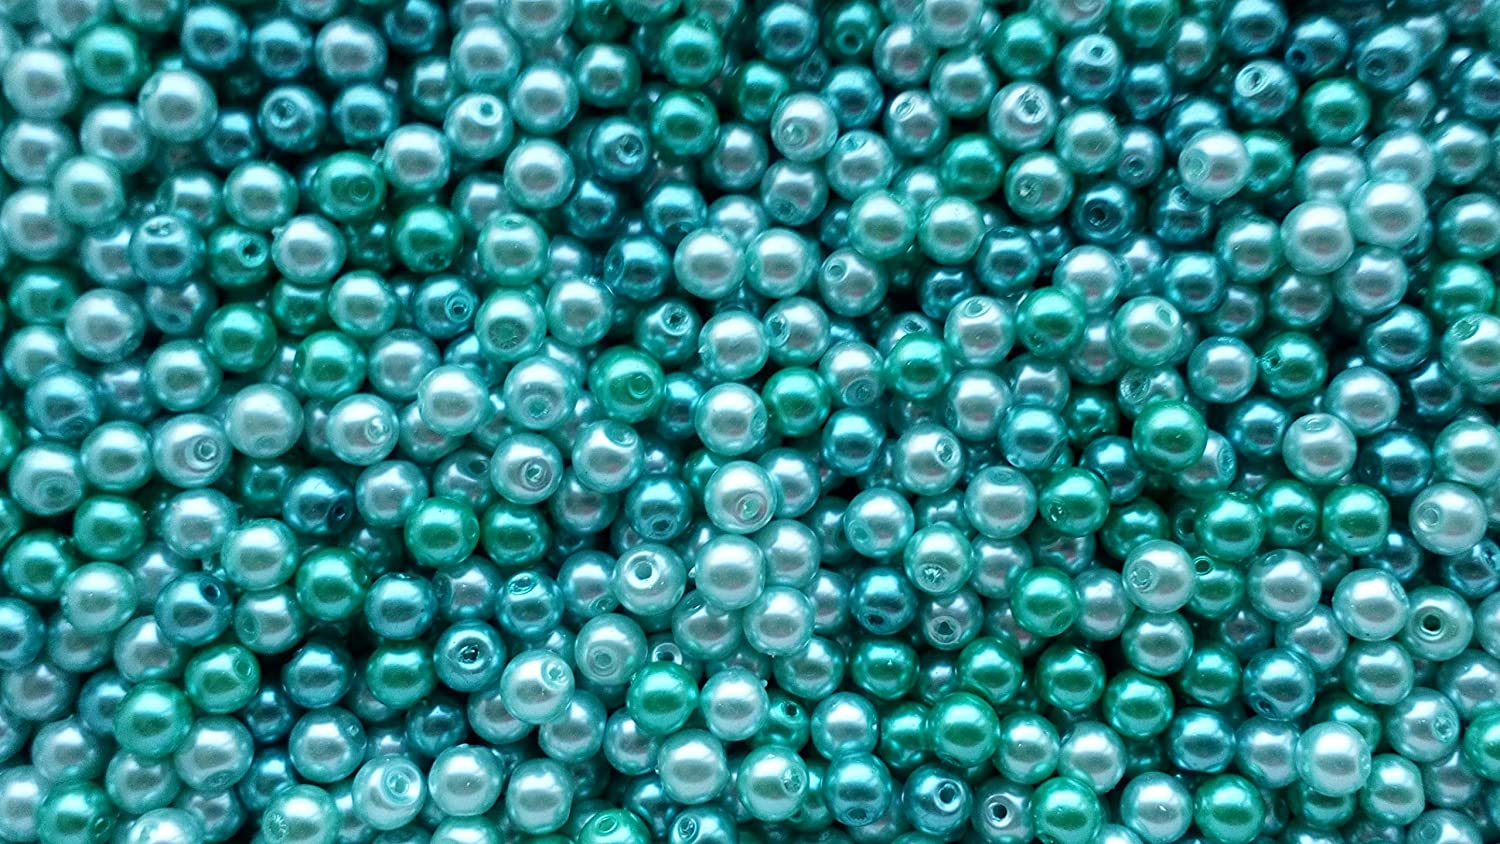 Blue, 8mm 200 6mm or 100 8mm Glass Pearl Beads//Bead mixes Choice of Colour 400 4mm